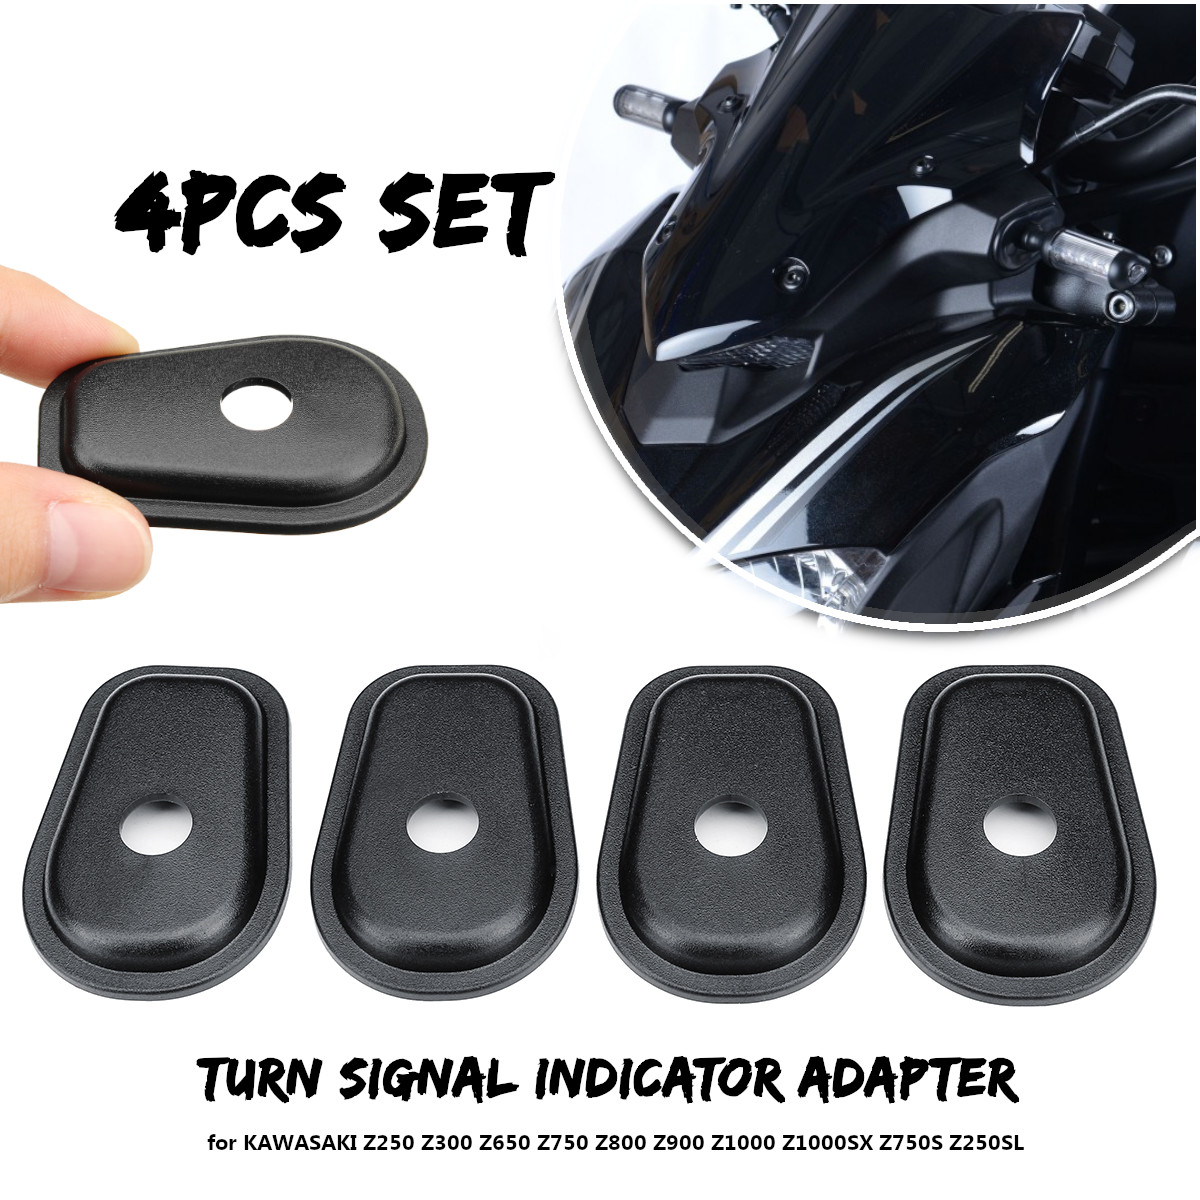 4pcs Motorcycle Turn Signal Indicator Adapter Spacers For KAWASAKI Z250 Z300 Z750 Z800 Z1000 Z1000SX Z750S Z250SL